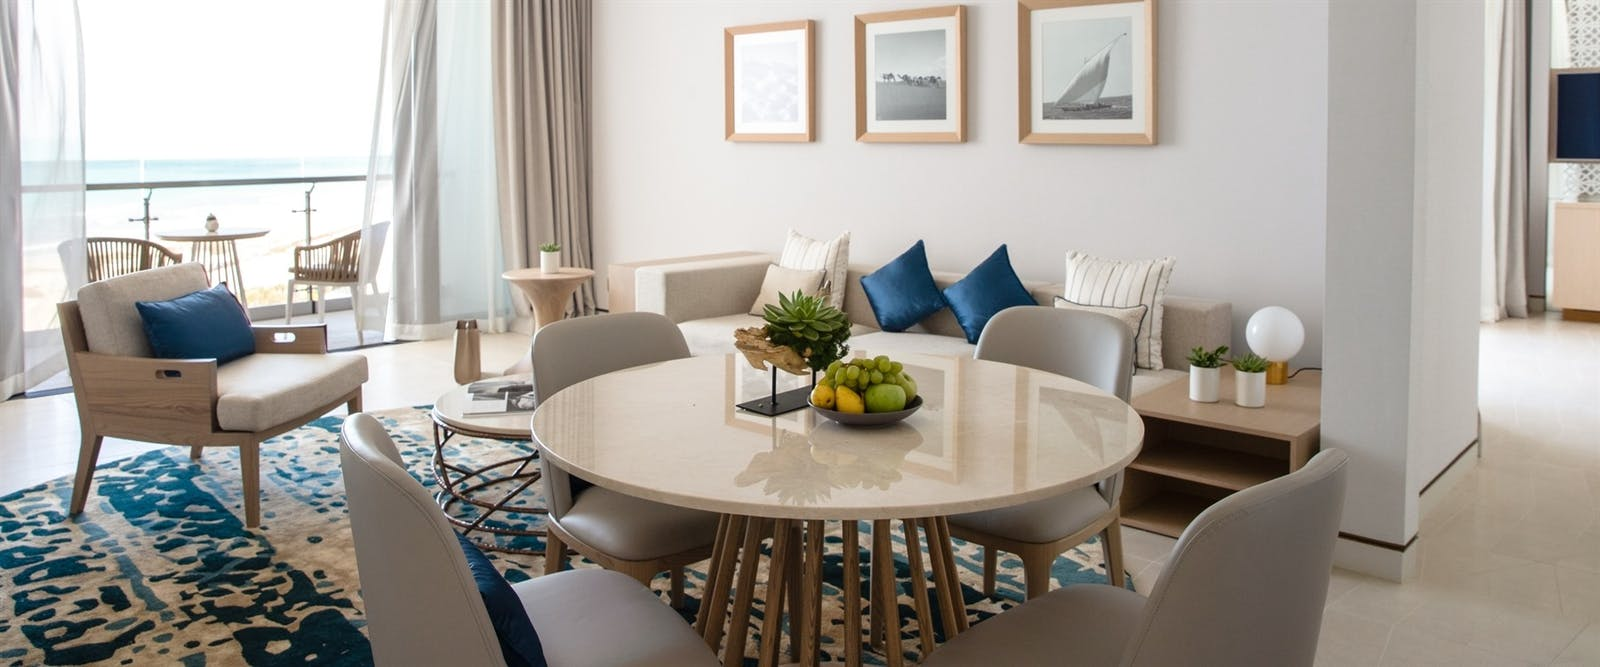 Ocean Suite or Family Suite at Jumeirah at Saadiyat Island Resort, Abu Dhabi